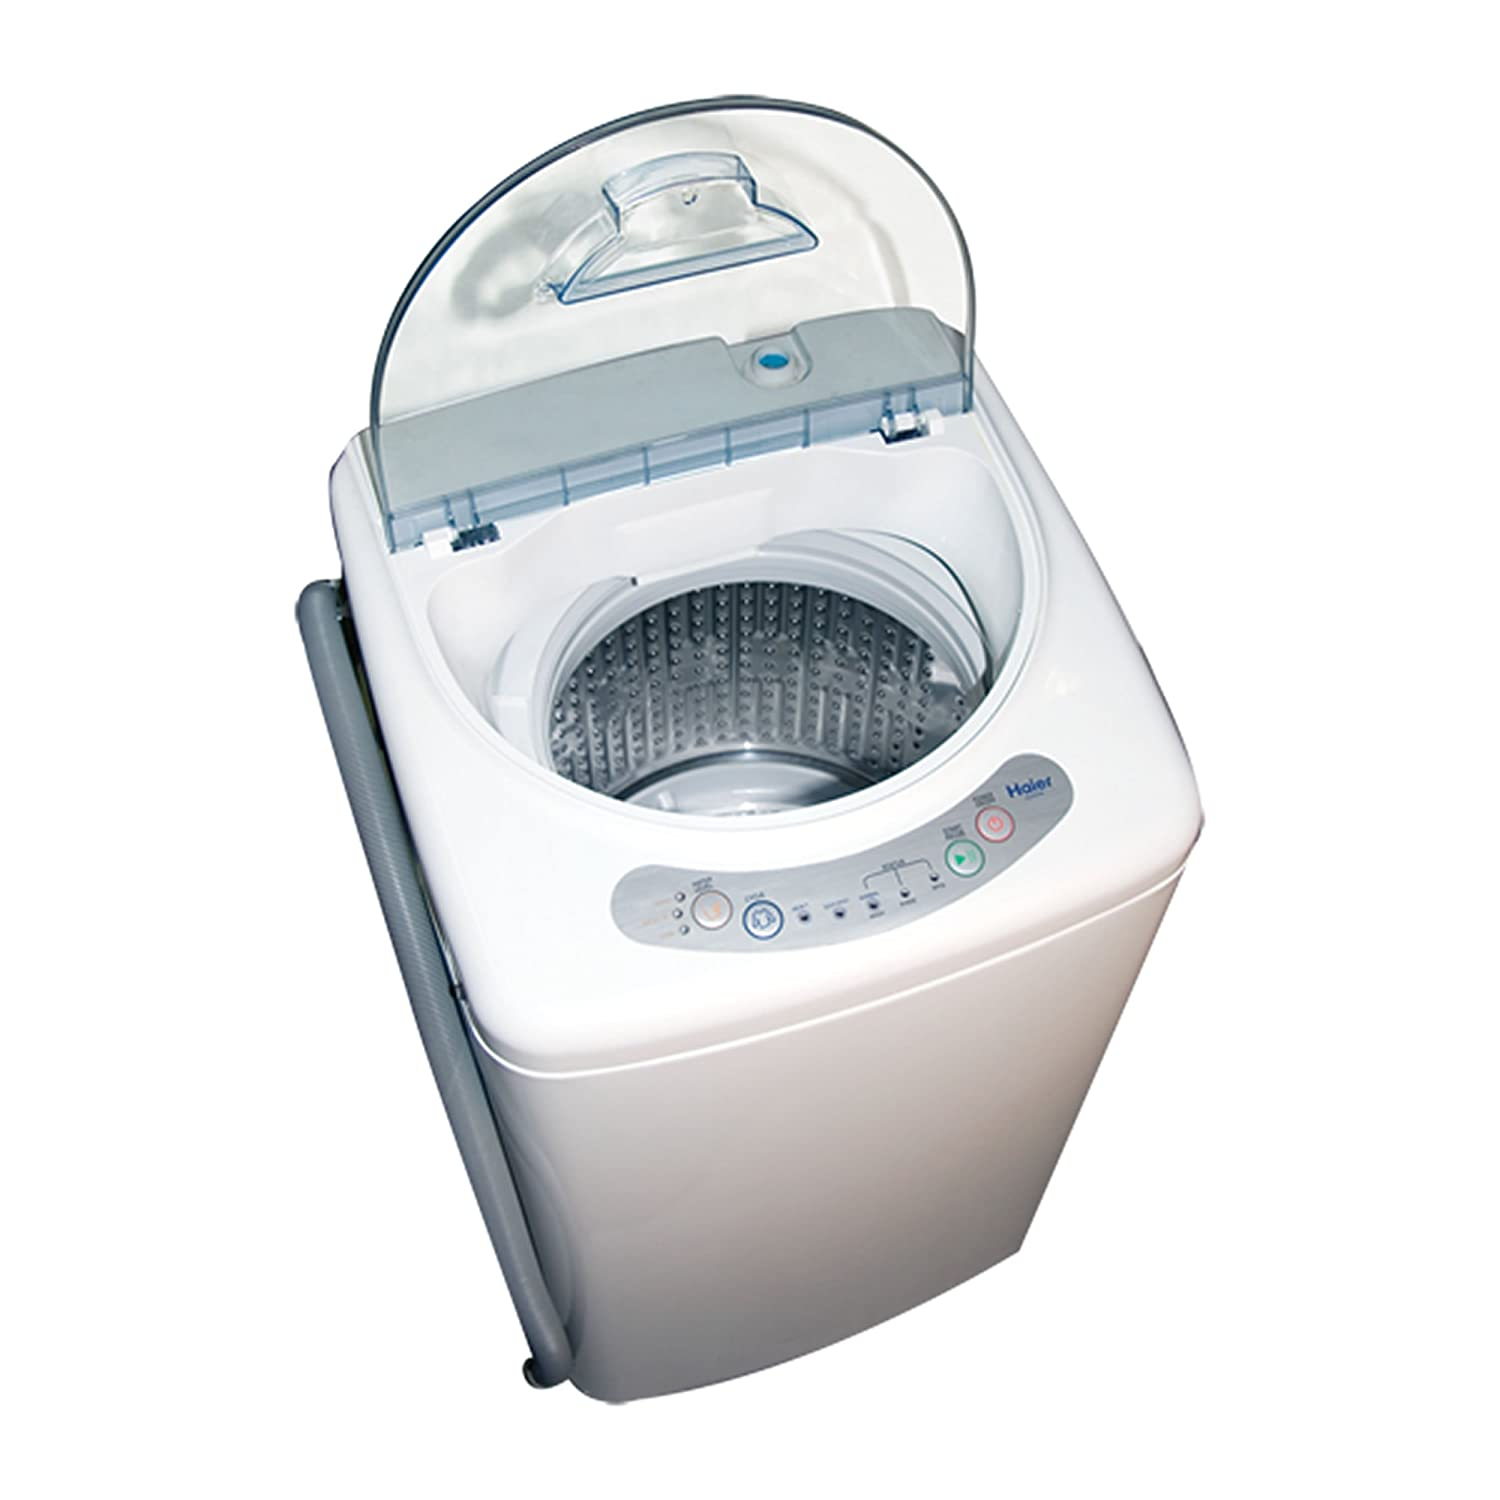 A Mini Washing Machine For Your Mini Living Space  Product Talk